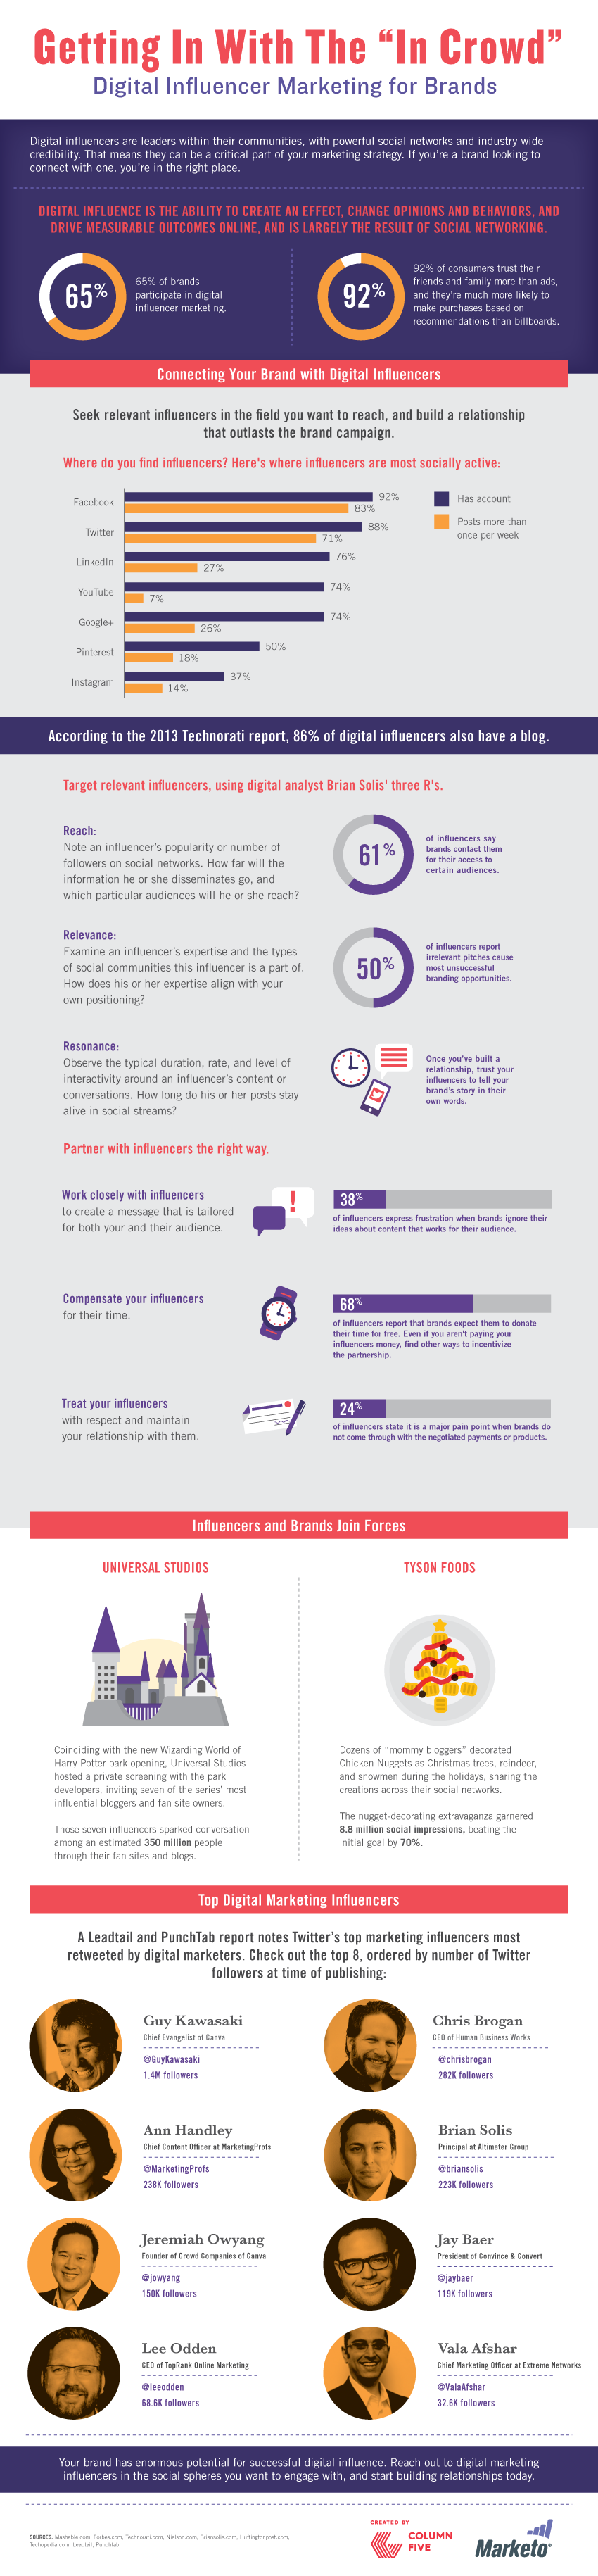 digital-influencer-marketing-for-social-media-brands-infographic